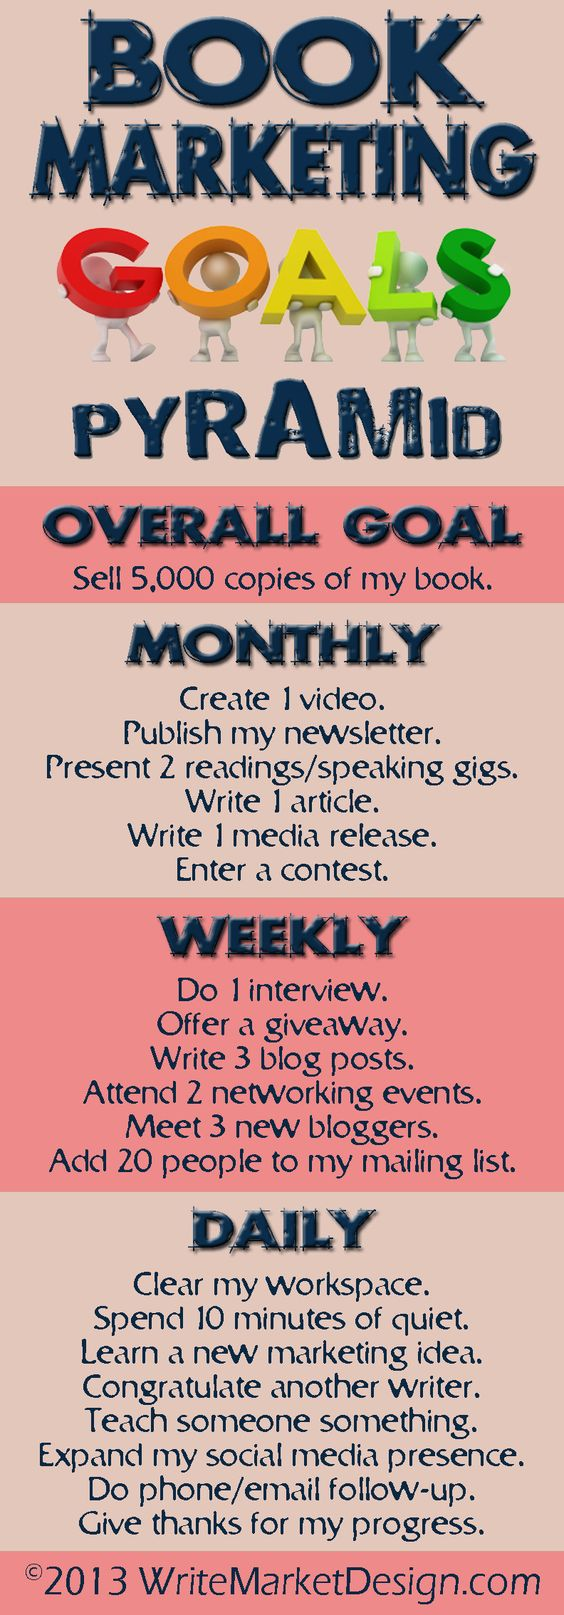 Book marketing goals. A pyramid of monthly, weekly and daily tasks that will help you achieve your author branding goals.